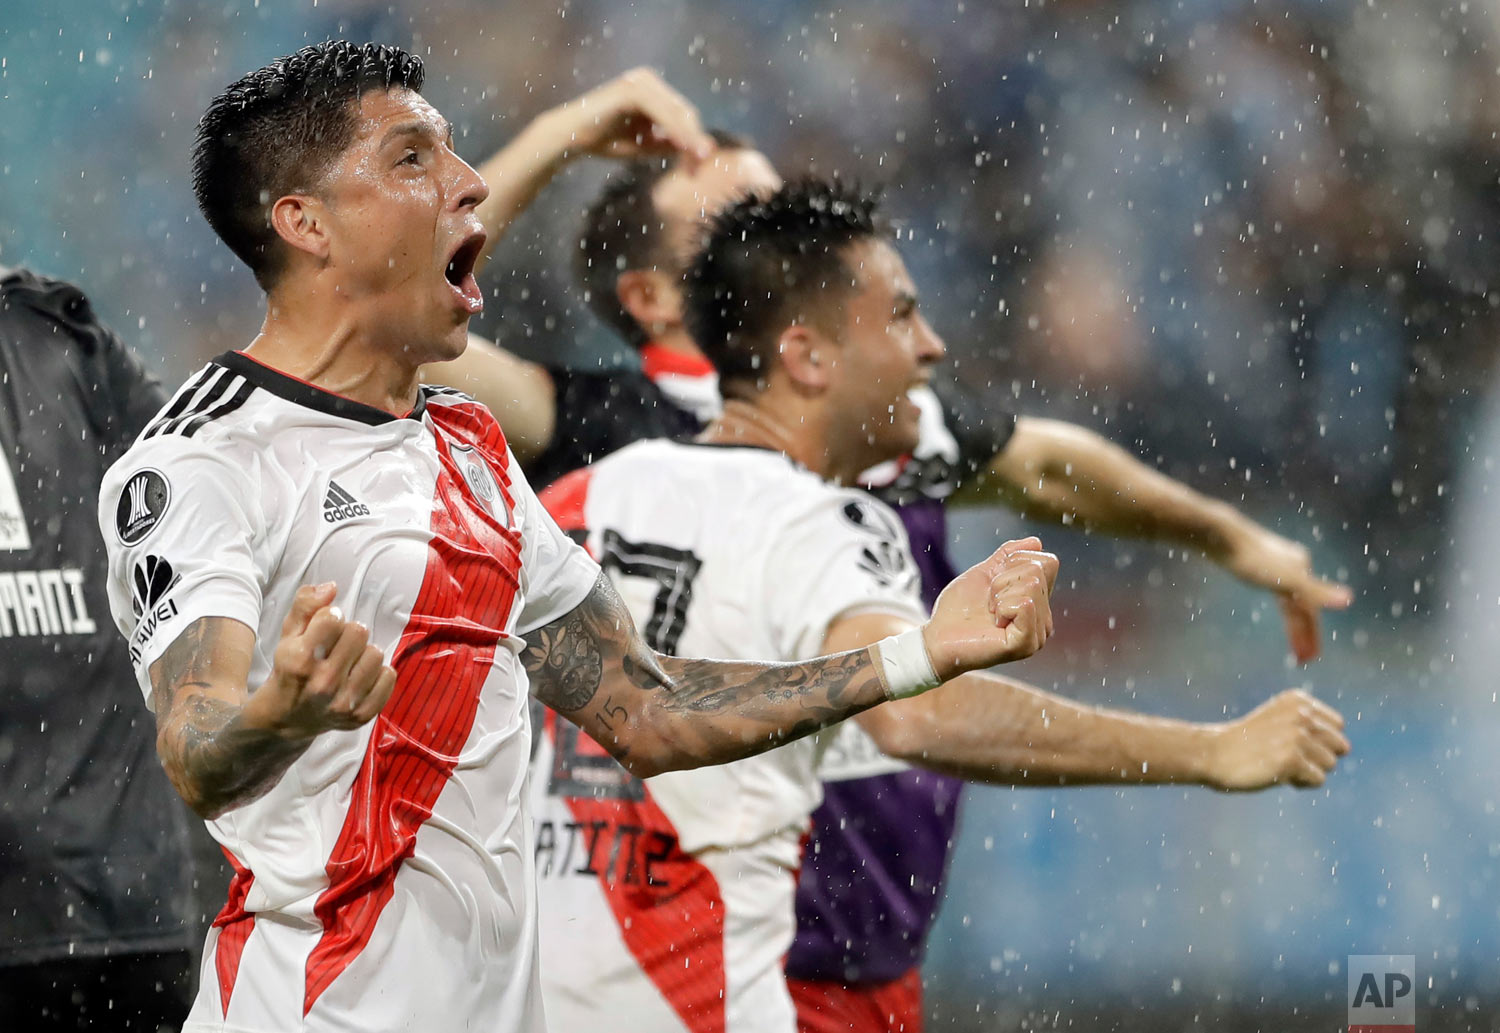 Argentina's River Plate players celebrate defeating Brazil's Gremio at a Copa Libertadores semifinal second leg match in Porto Alegre, Brazil, Oct. 30, 2018. River advances to the finals. (AP Photo/Andre Penner)